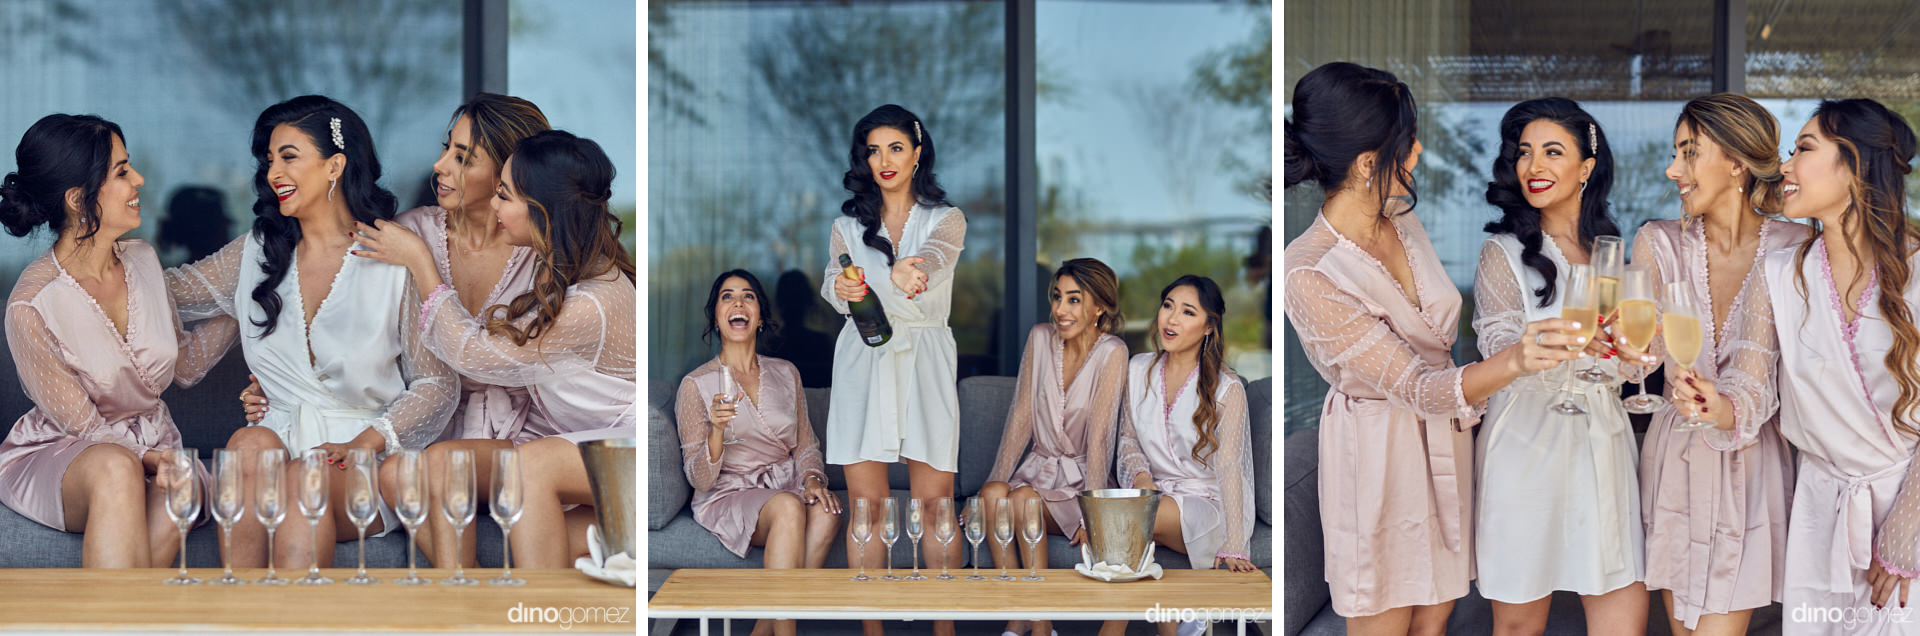 Persian Bride Toasting With Her Bridesmaids On Her Cabo Wedding